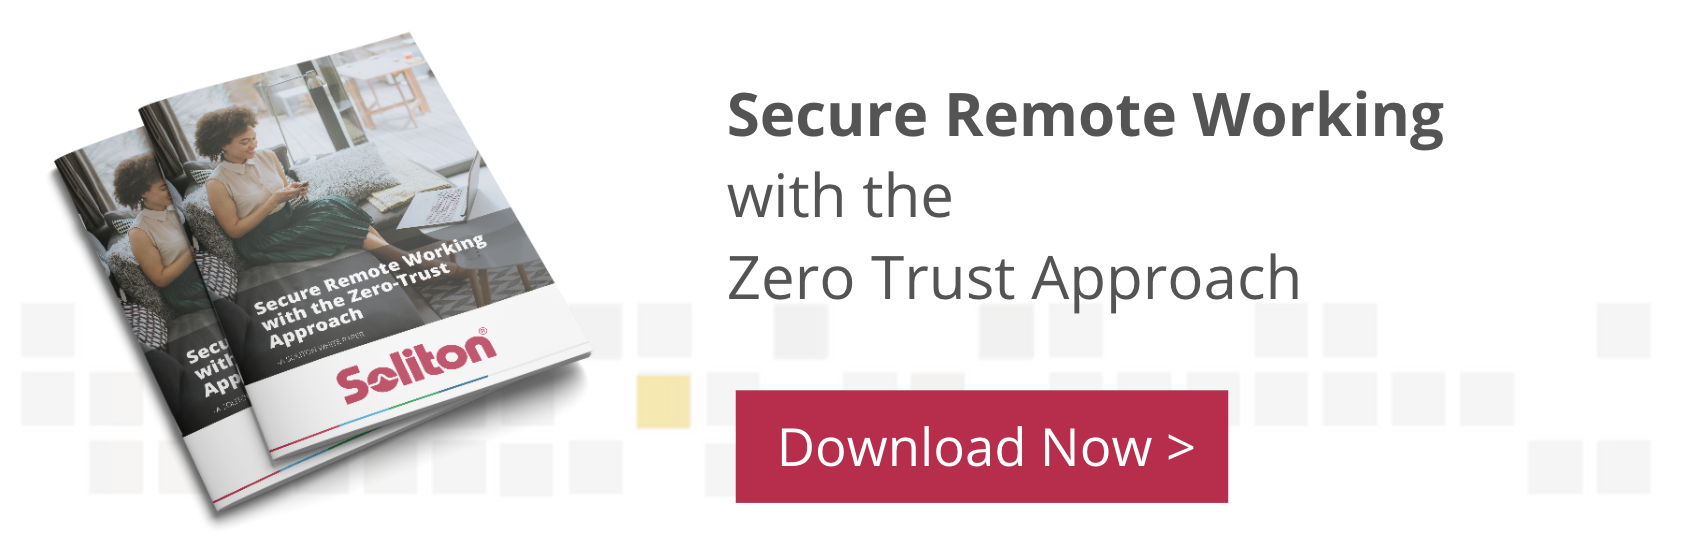 Secure Remote Access with the Zero Trust Approach